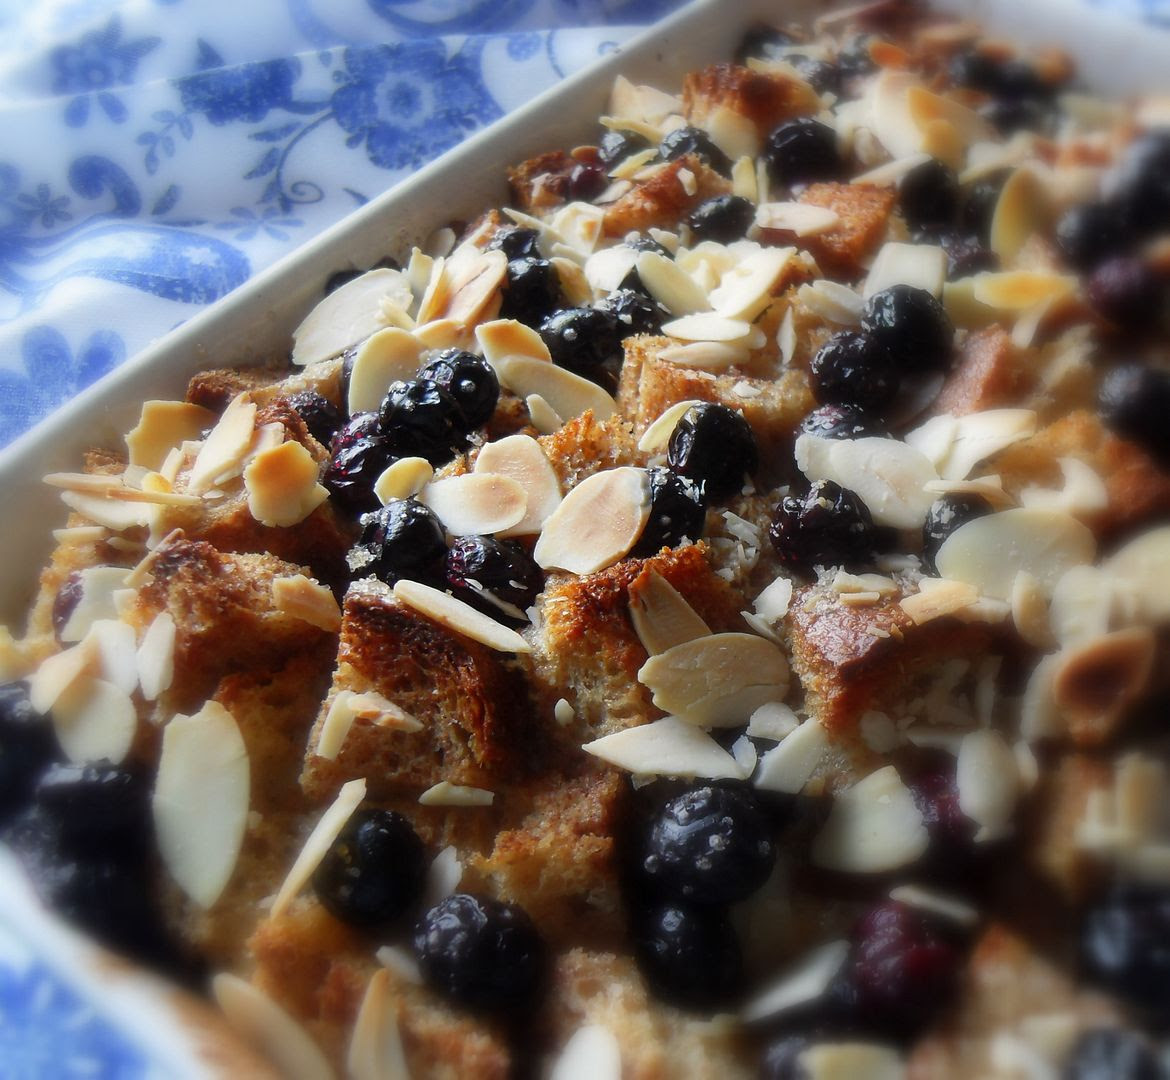 Blueberry and Almond Breakfast Bake